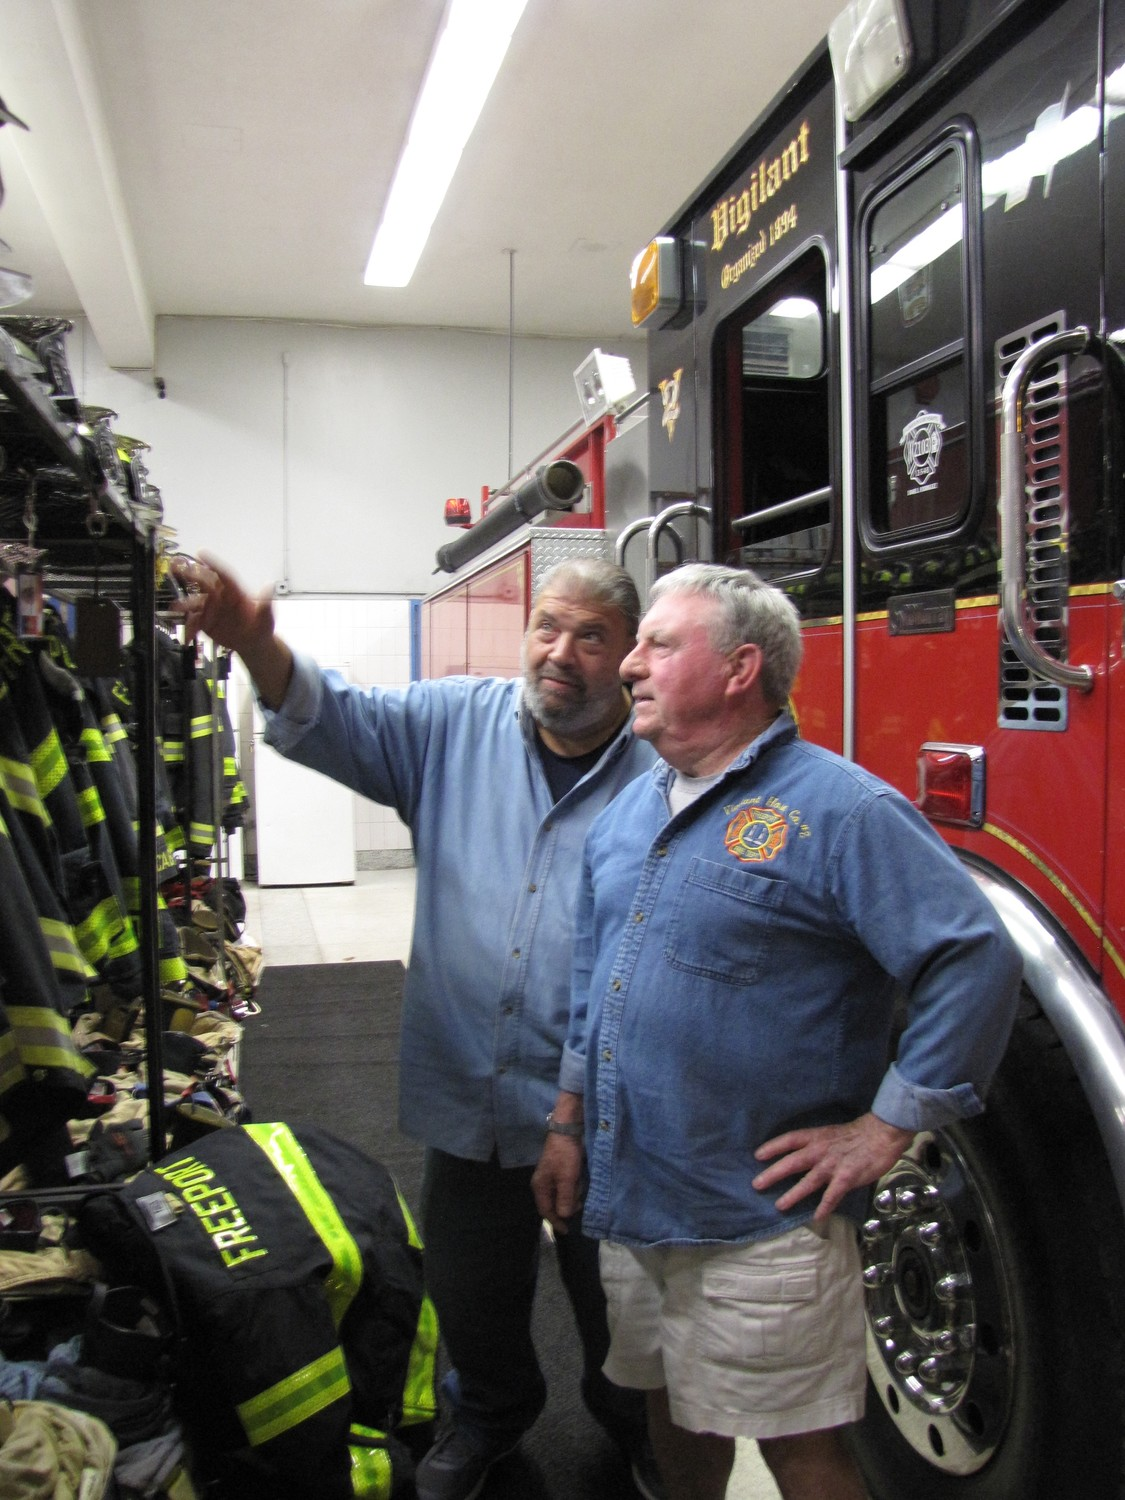 Though retired from their careers, Freeport firefighters Anthony Basile, left, and Edward Martin continue to volunteer with the department as mentors and supporters of younger firefighters.